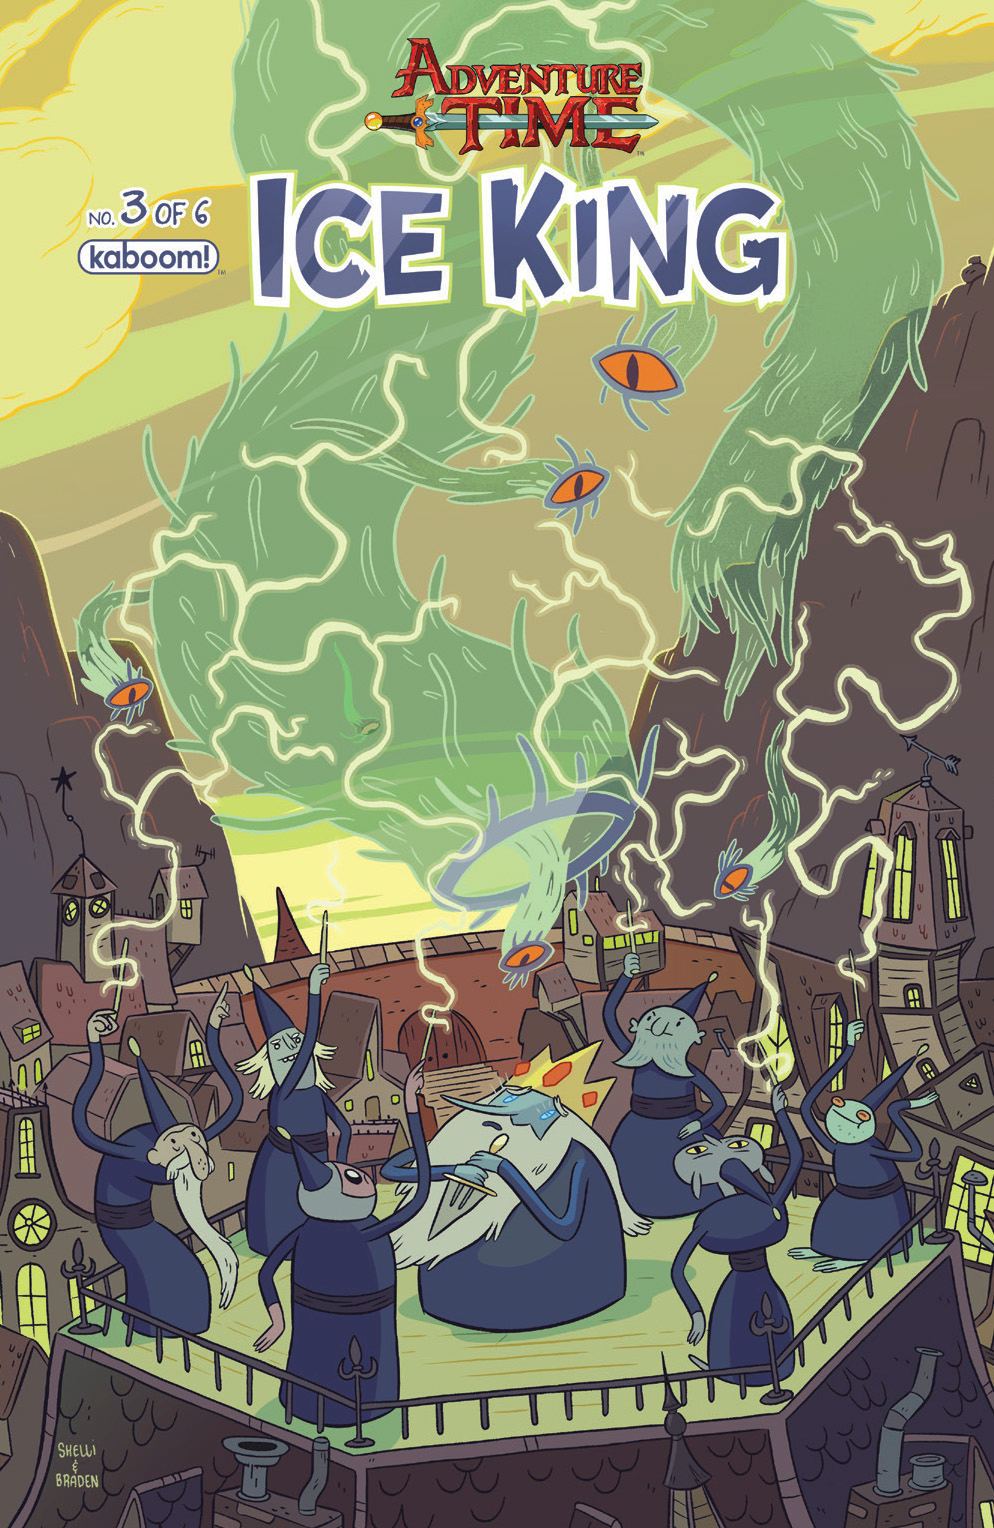 ADVENTURE TIME ICE KING #3